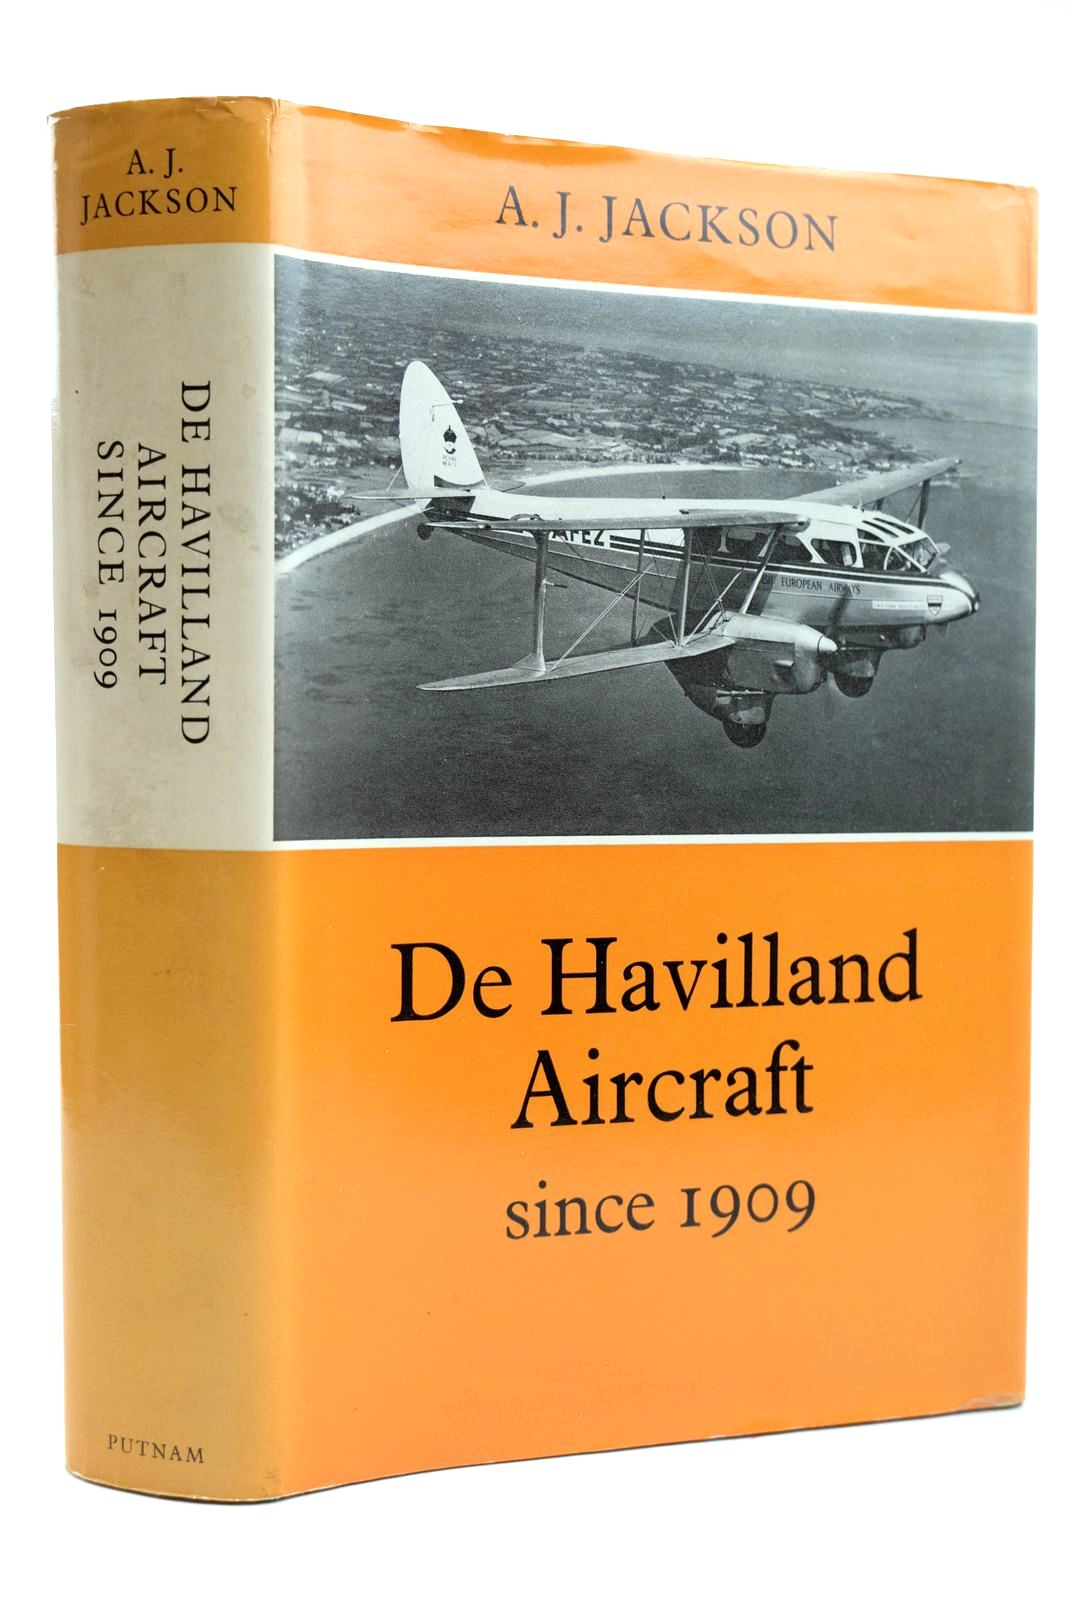 Photo of DE HAVILLAND AIRCRAFT SINCE 1909 written by Jackson, A.J. published by Putnam (STOCK CODE: 2131911)  for sale by Stella & Rose's Books